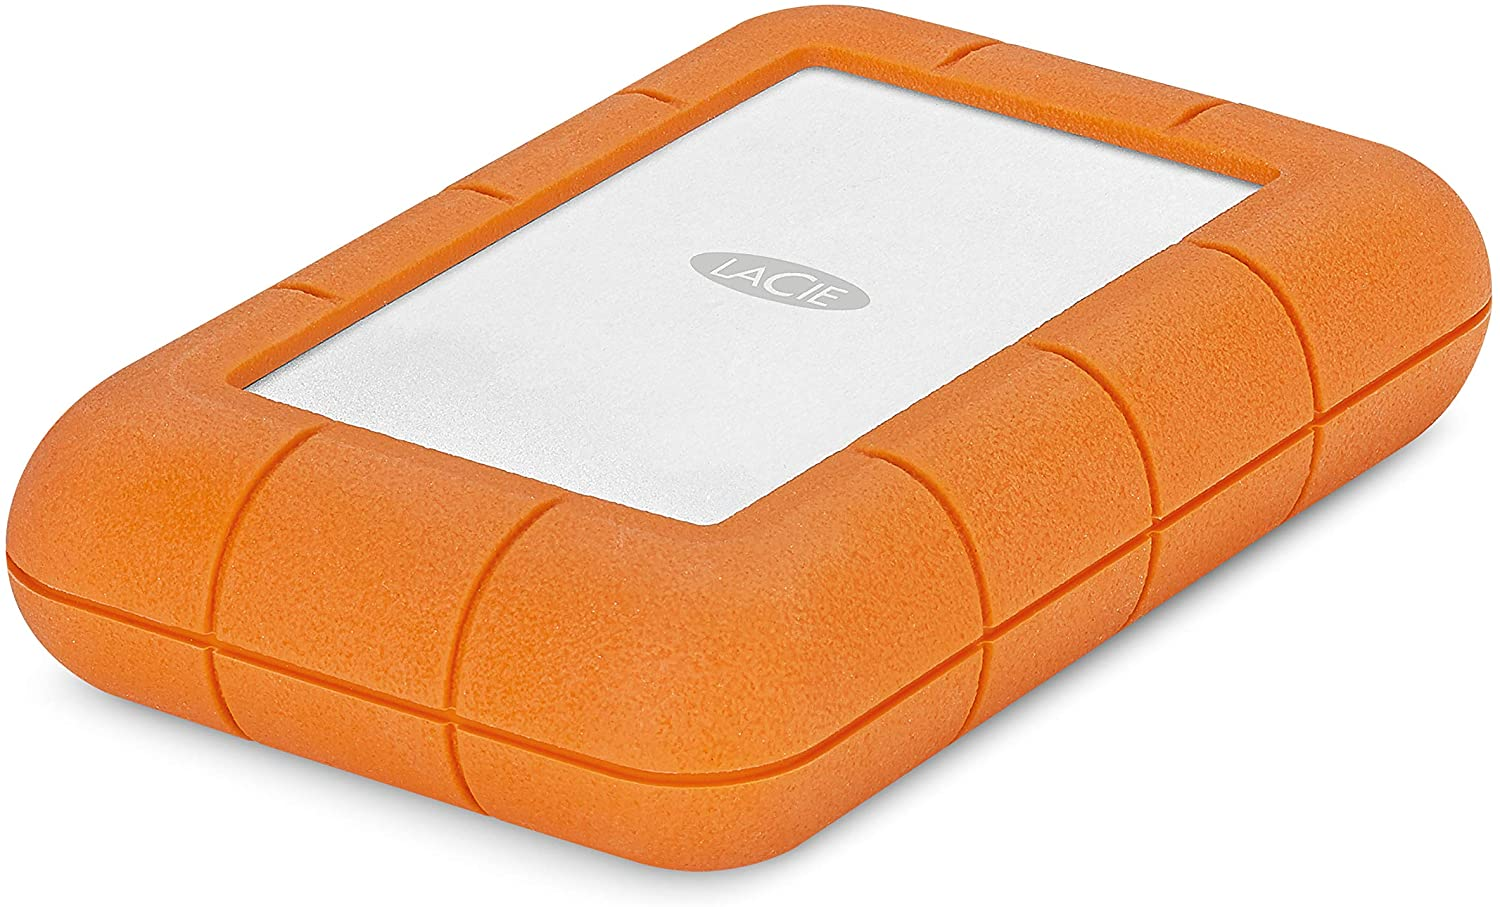 LaCie Rugged Raid Pro 4TB External Hard Drive Portable HDD – USB 3.0 Compatible – with SD Card Slot, Drop Shock Dust Water Resistant, for Mac and PC Computer Desktop Workstation Laptop (STGW4000800)